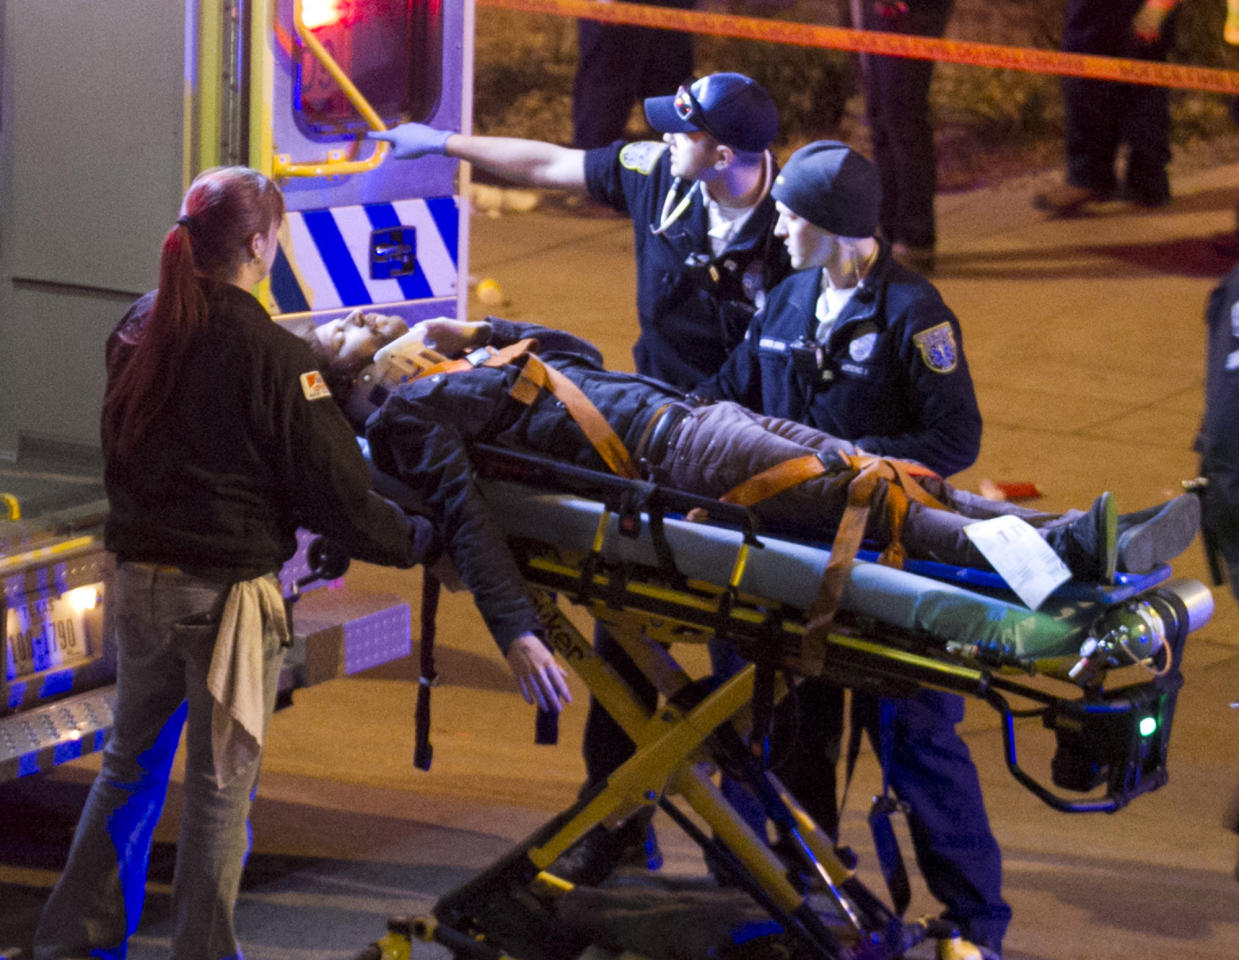 A man is transported to an ambulance after being struck by a vehicle on Red River Street in downtown Austin, Texas, on Wednesday March 12, 2014. Police say two people were confirmed dead at the scene after a car drove through temporary barricades set up for the South By Southwest festival and struck a crowd of pedestrians. The condition of the man is unknown. (AP Photo/Austin American-Statesman, Jay Janner)